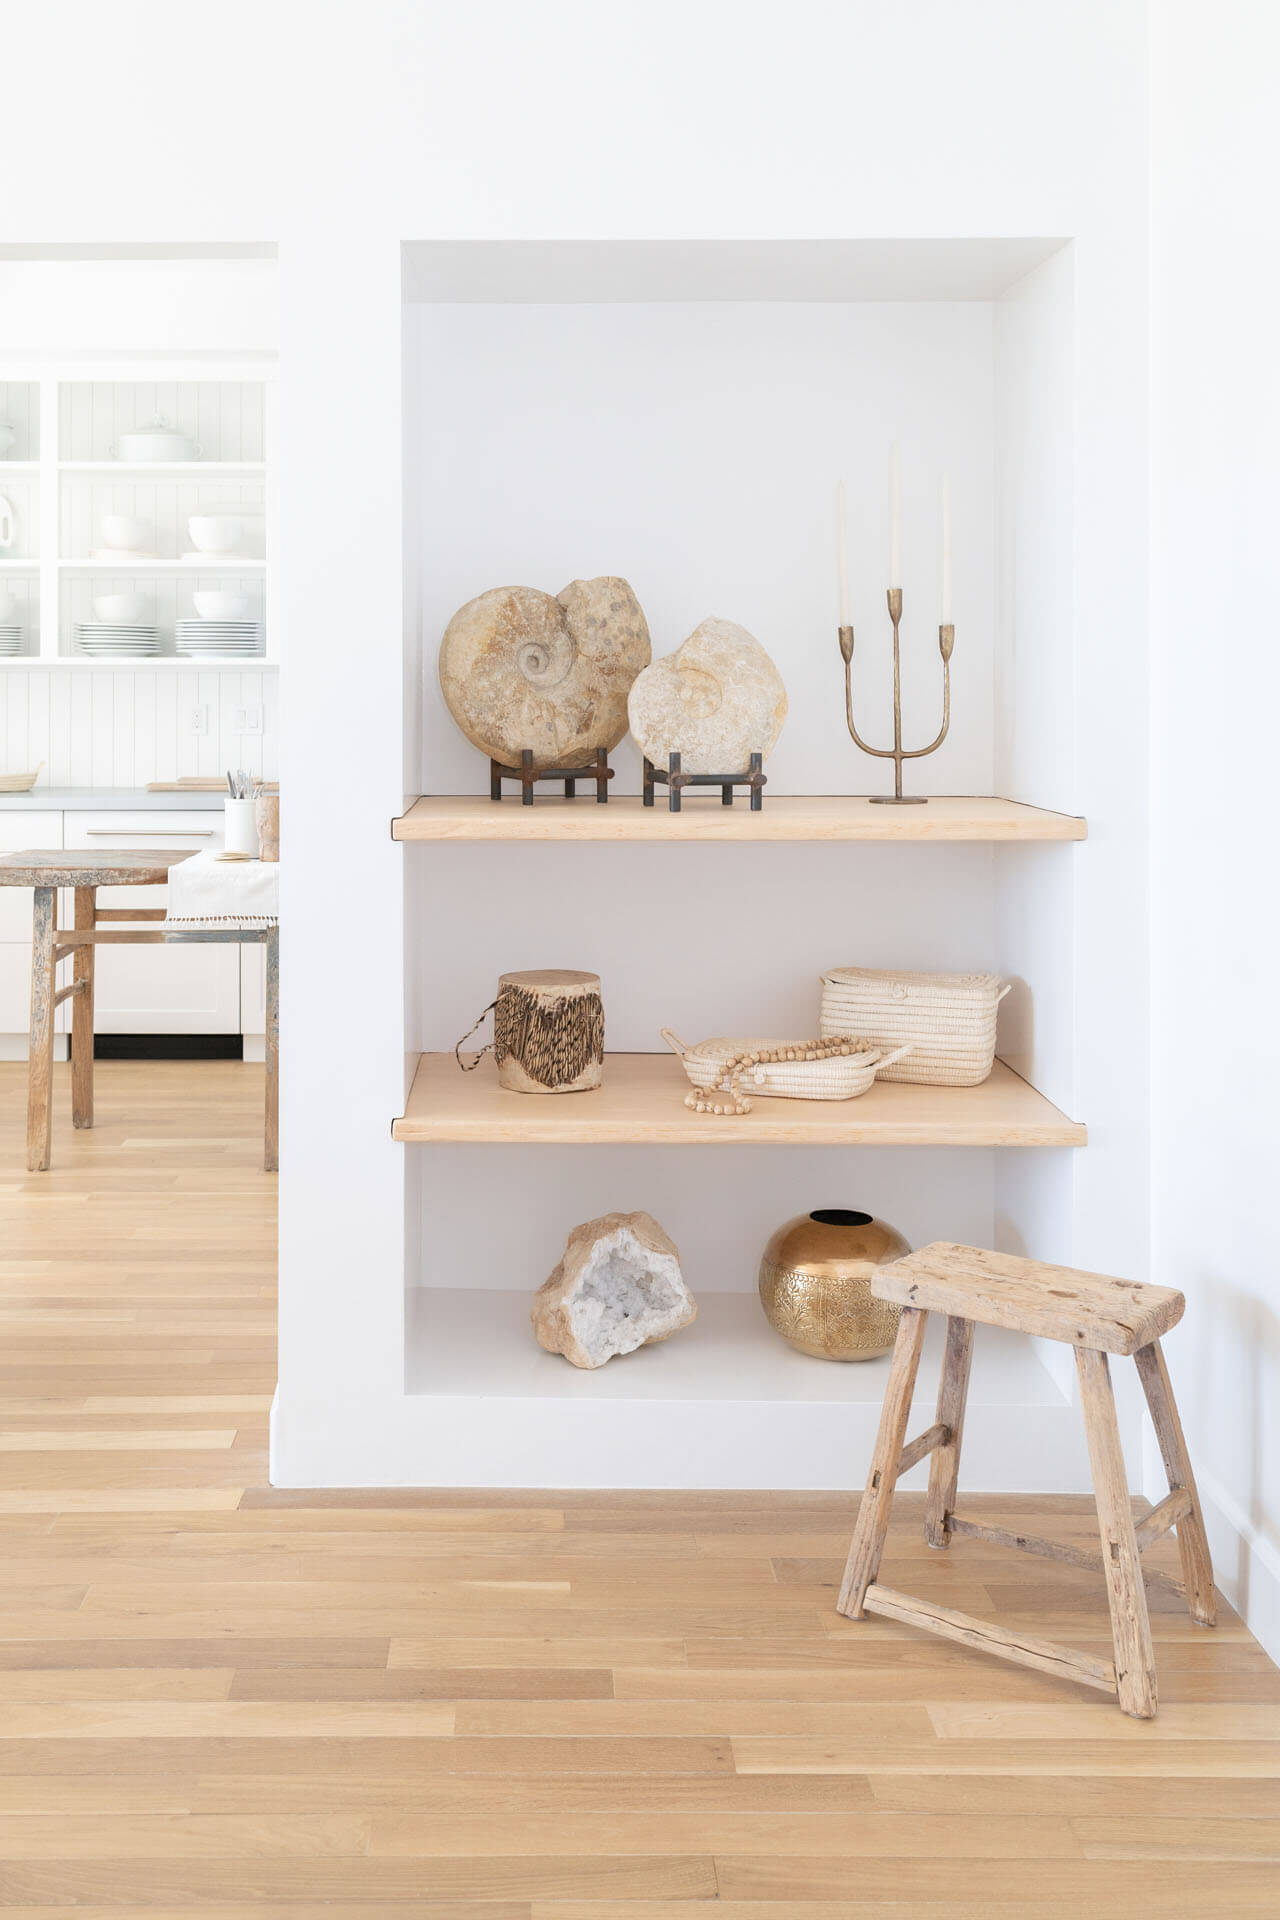 Built in living room shelving with natural hardwood flooring